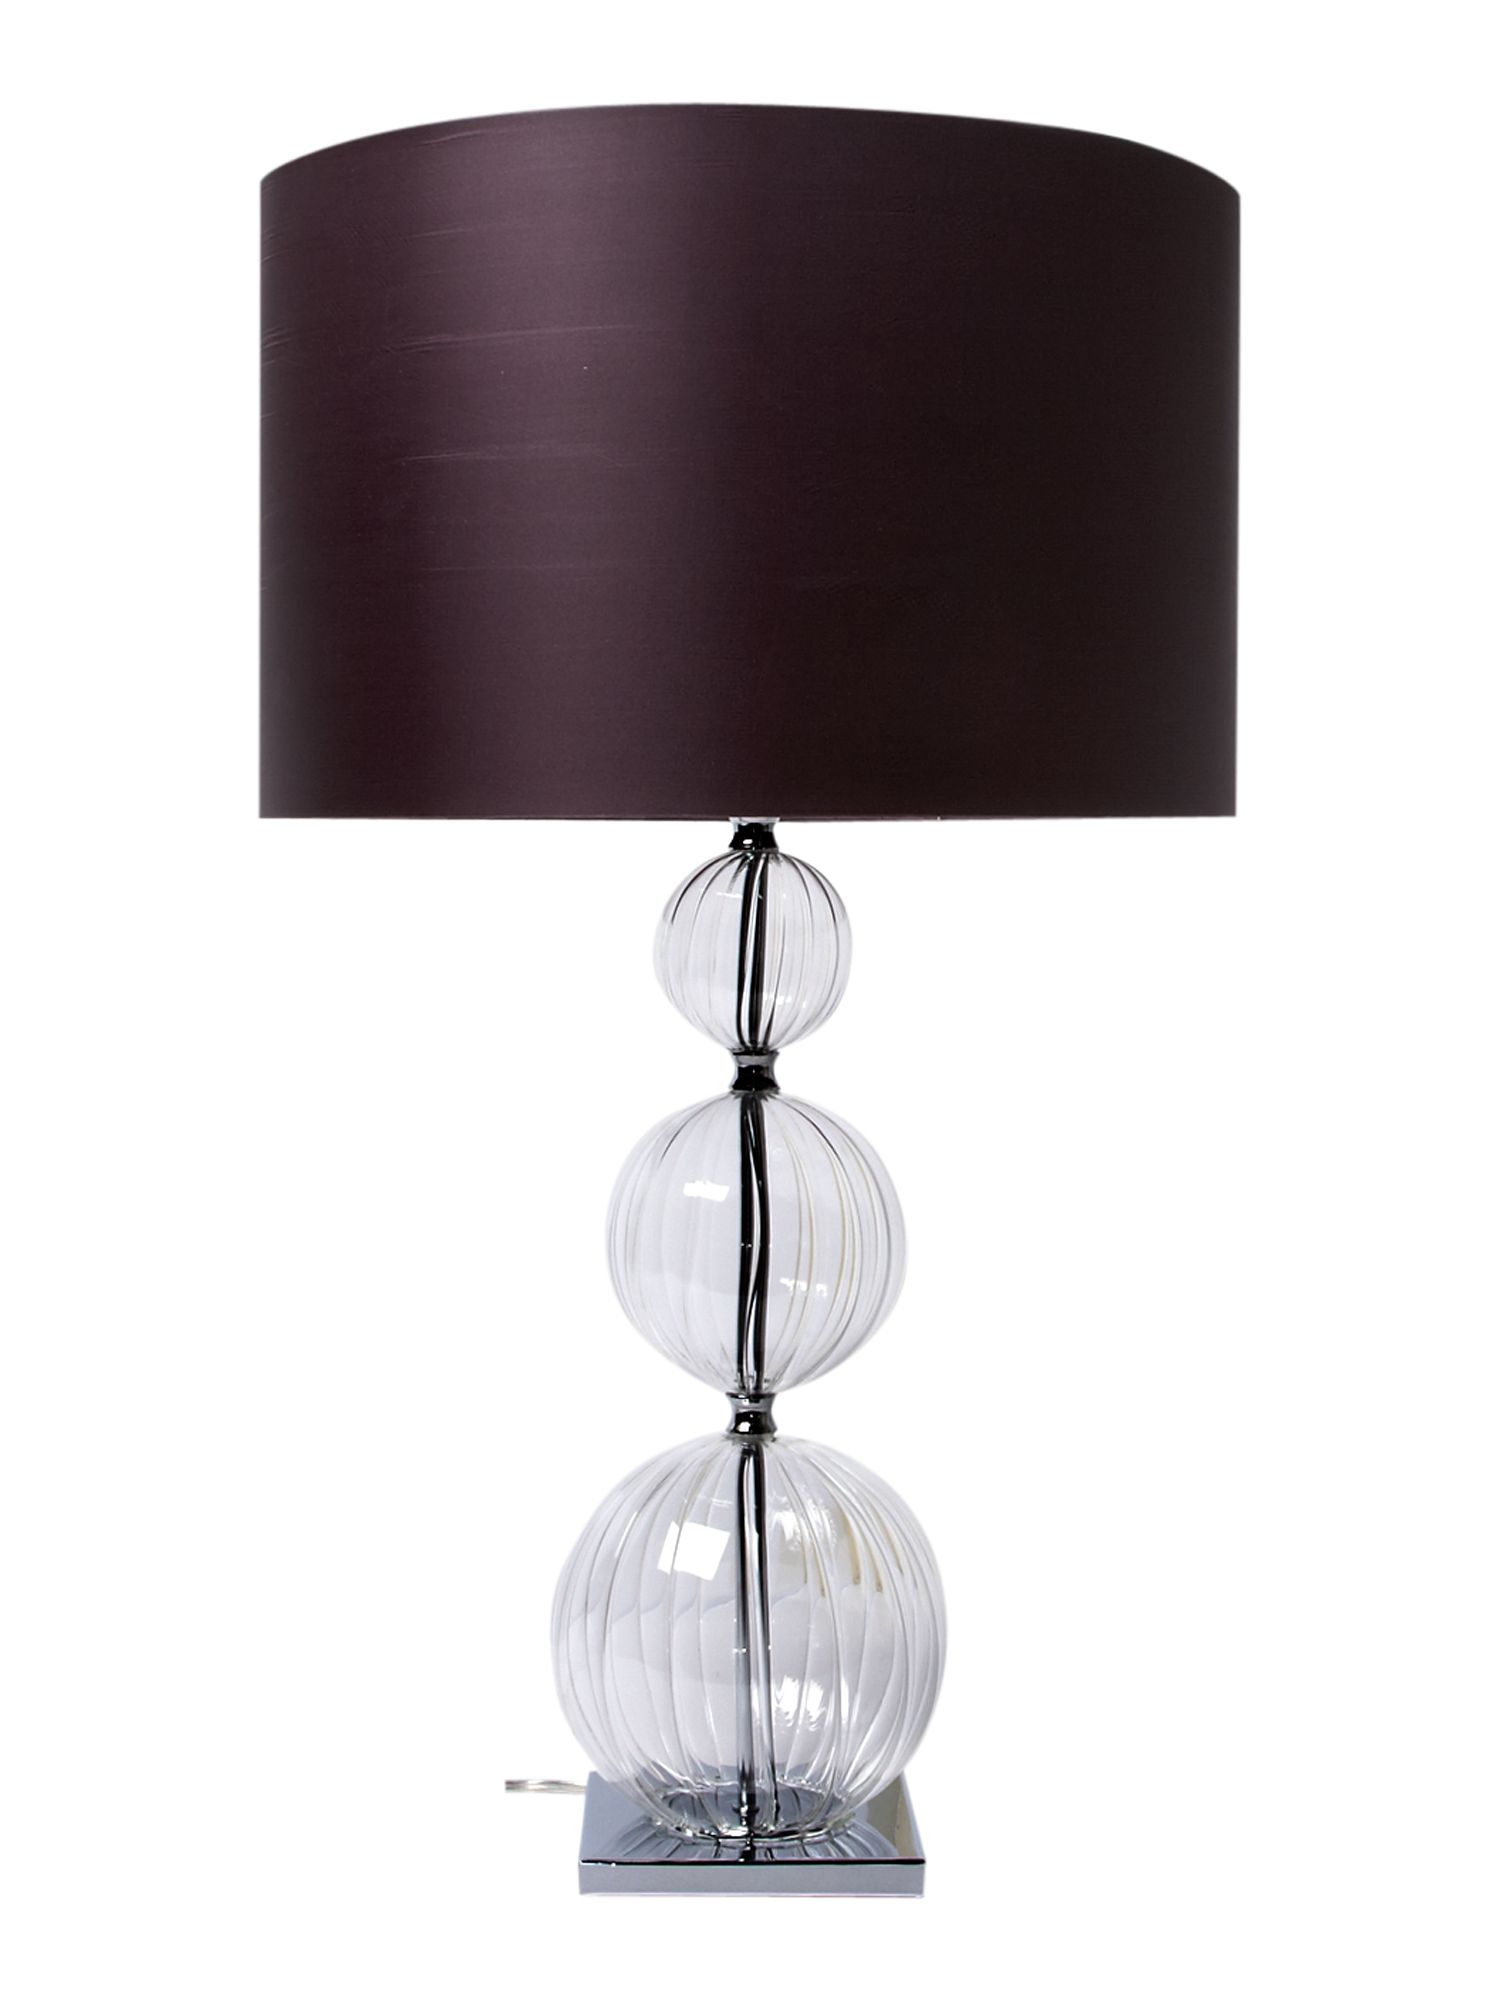 Opollo glass table lamp with plum shade